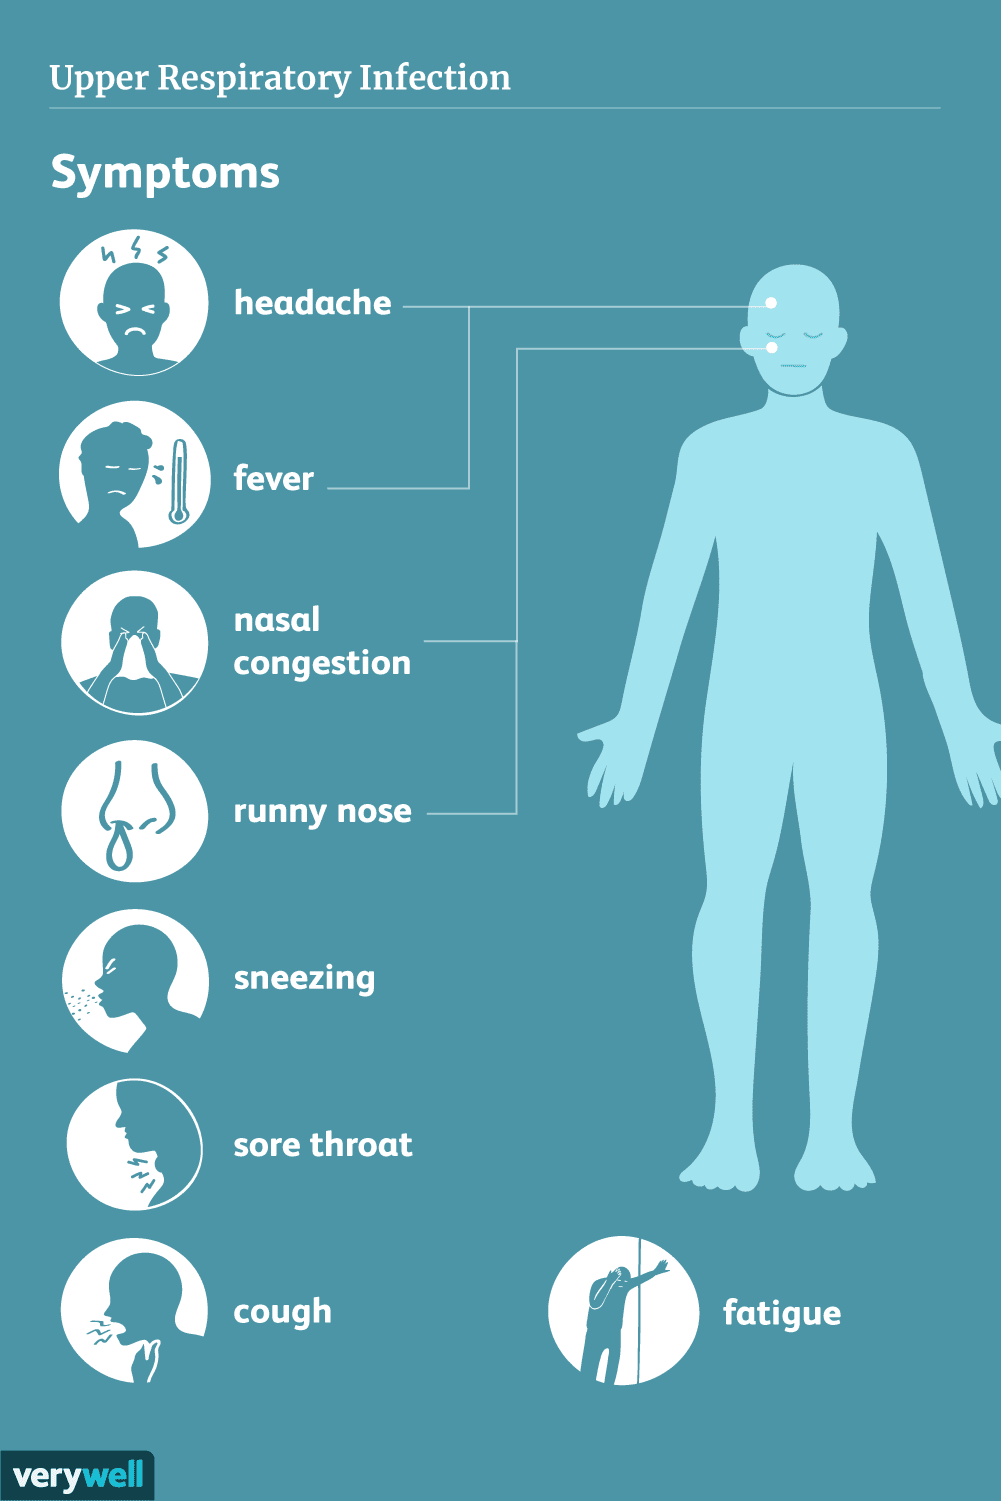 Symptoms of upper respiratory infections